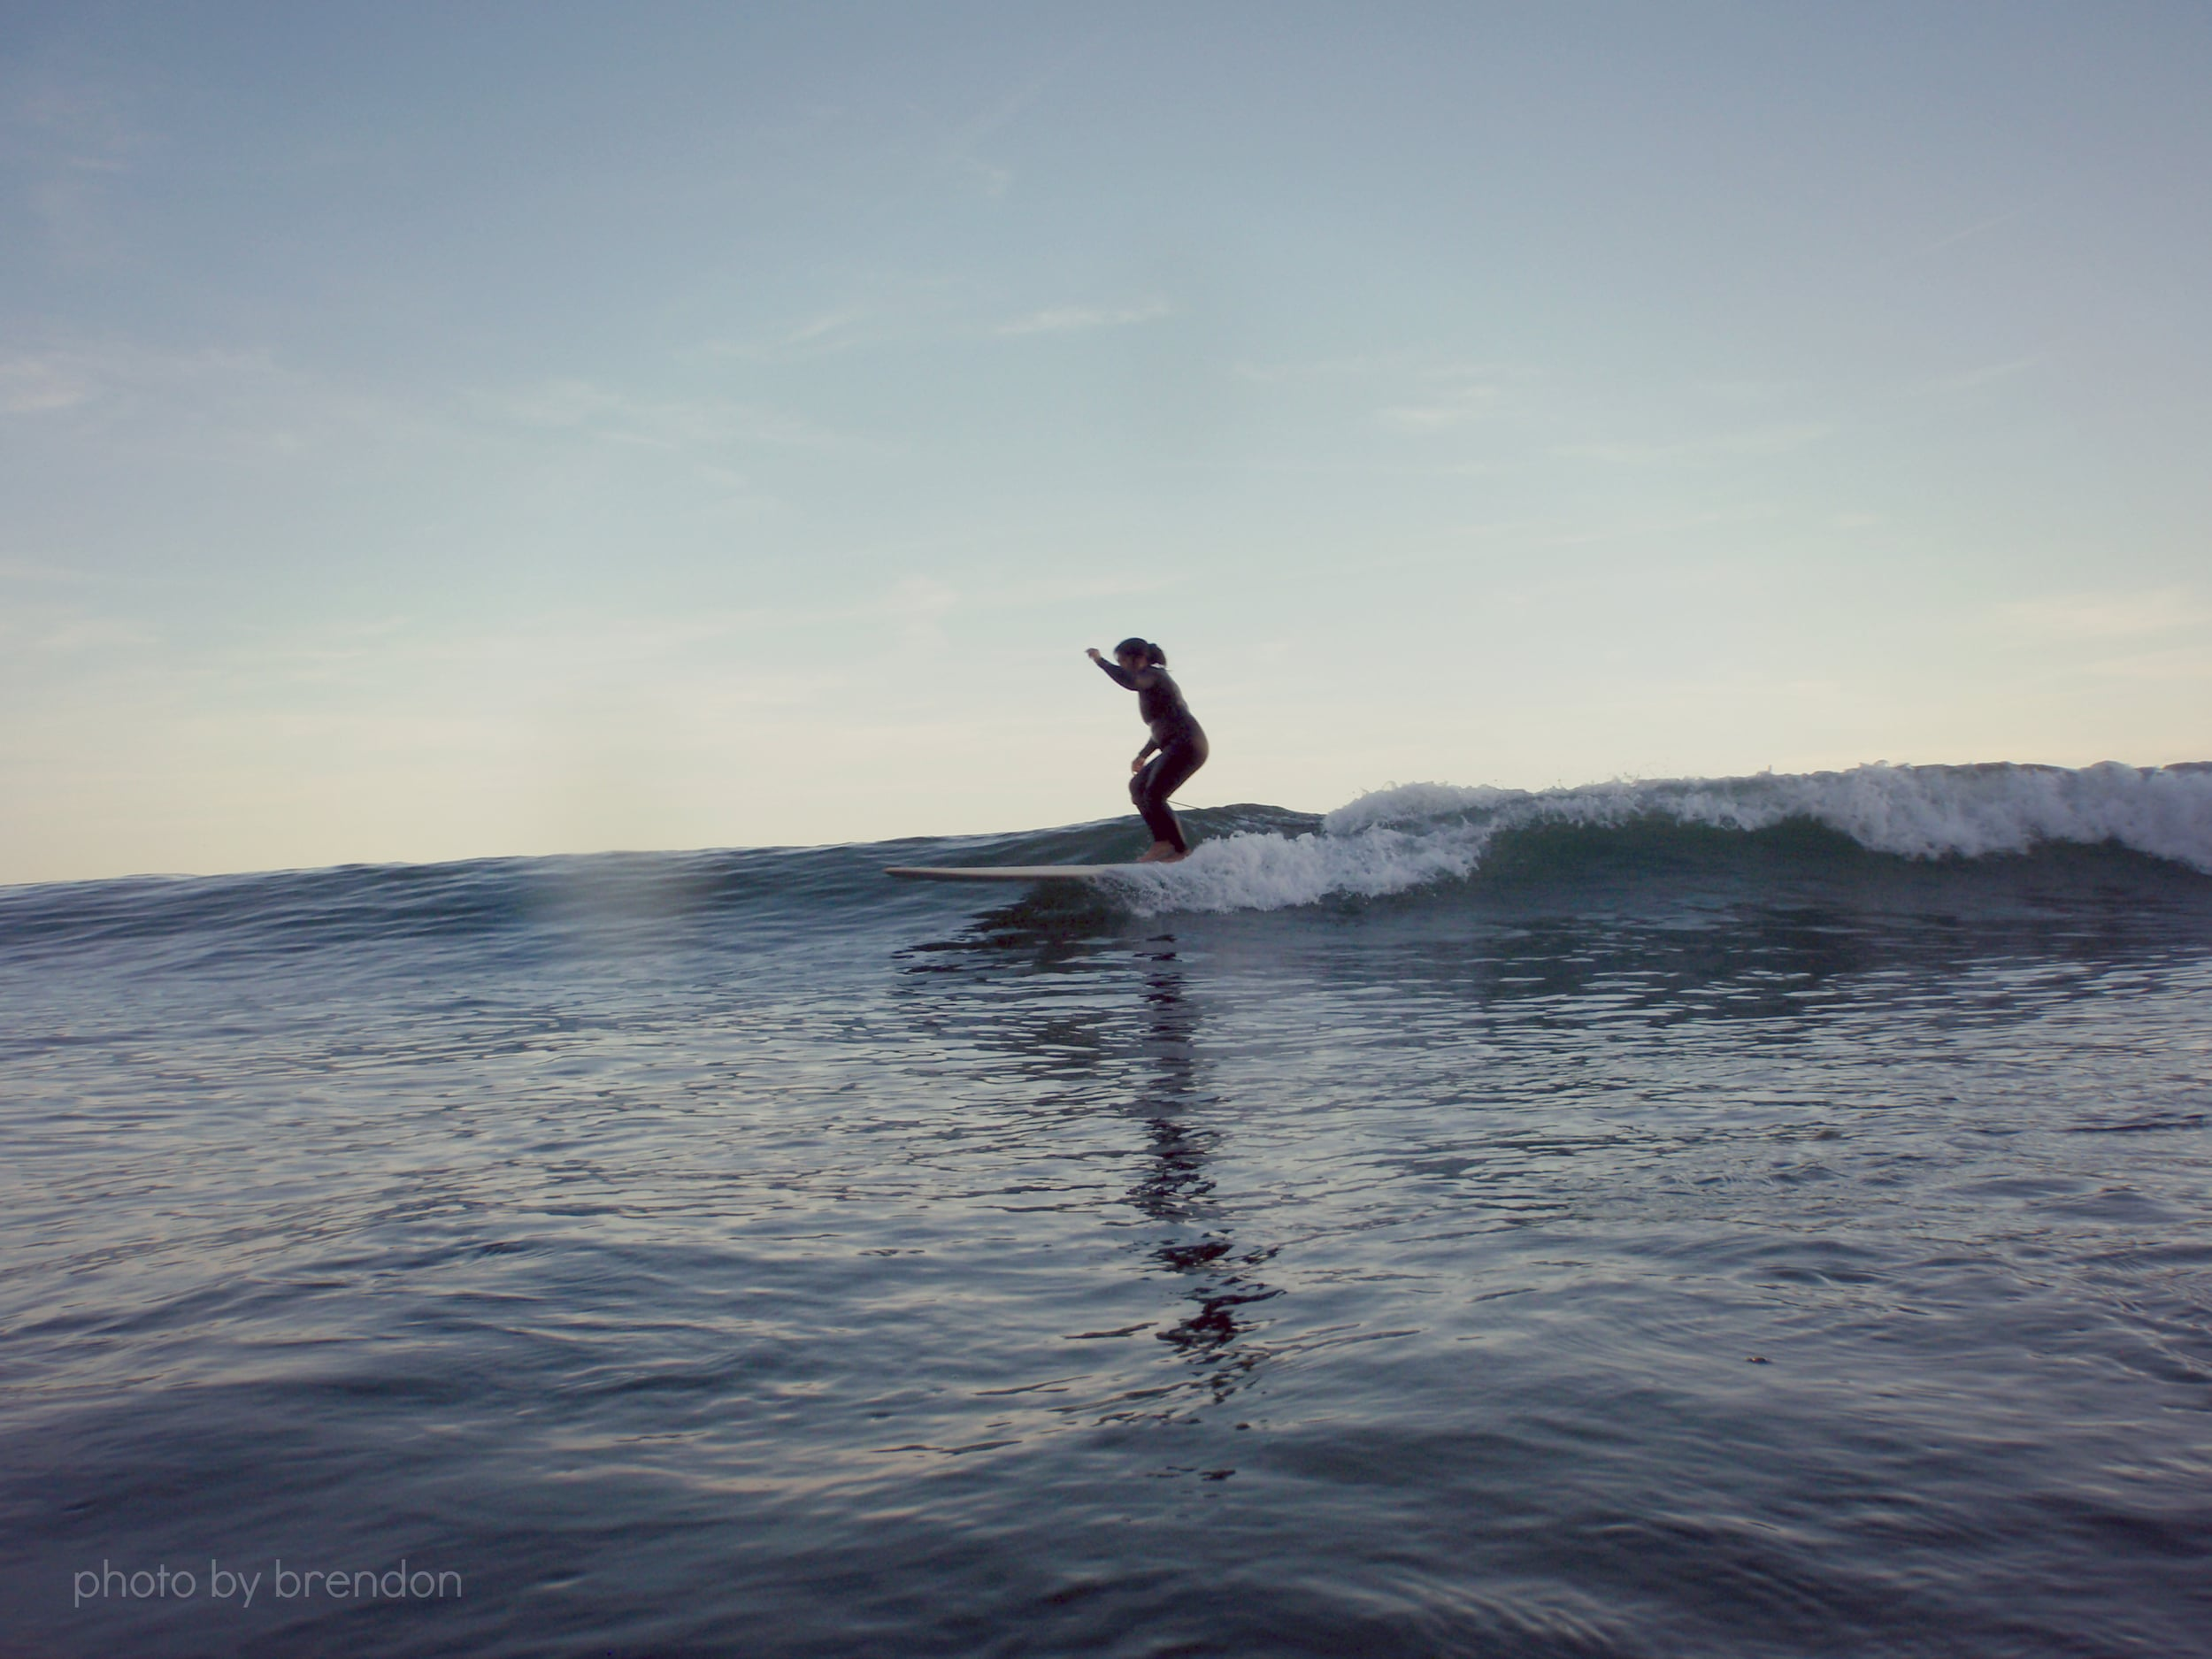 desiree east. rincon, california. photo by brendon east